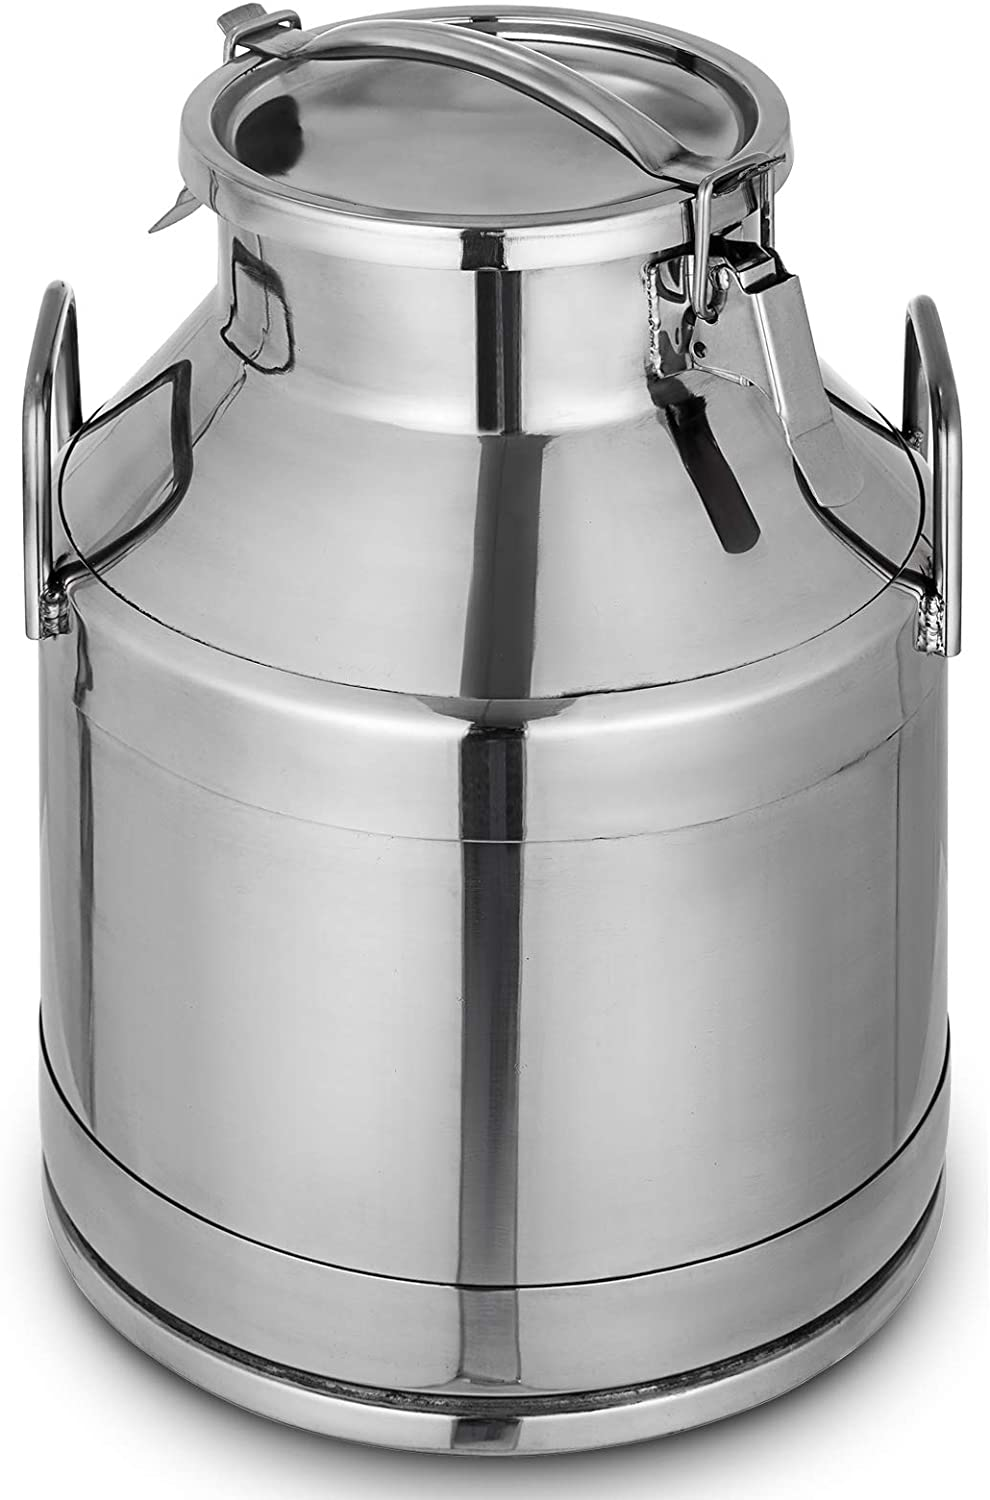 Mophorn Stainless Steel Milk Can 20 Liter Milk bucket Wine Bucket